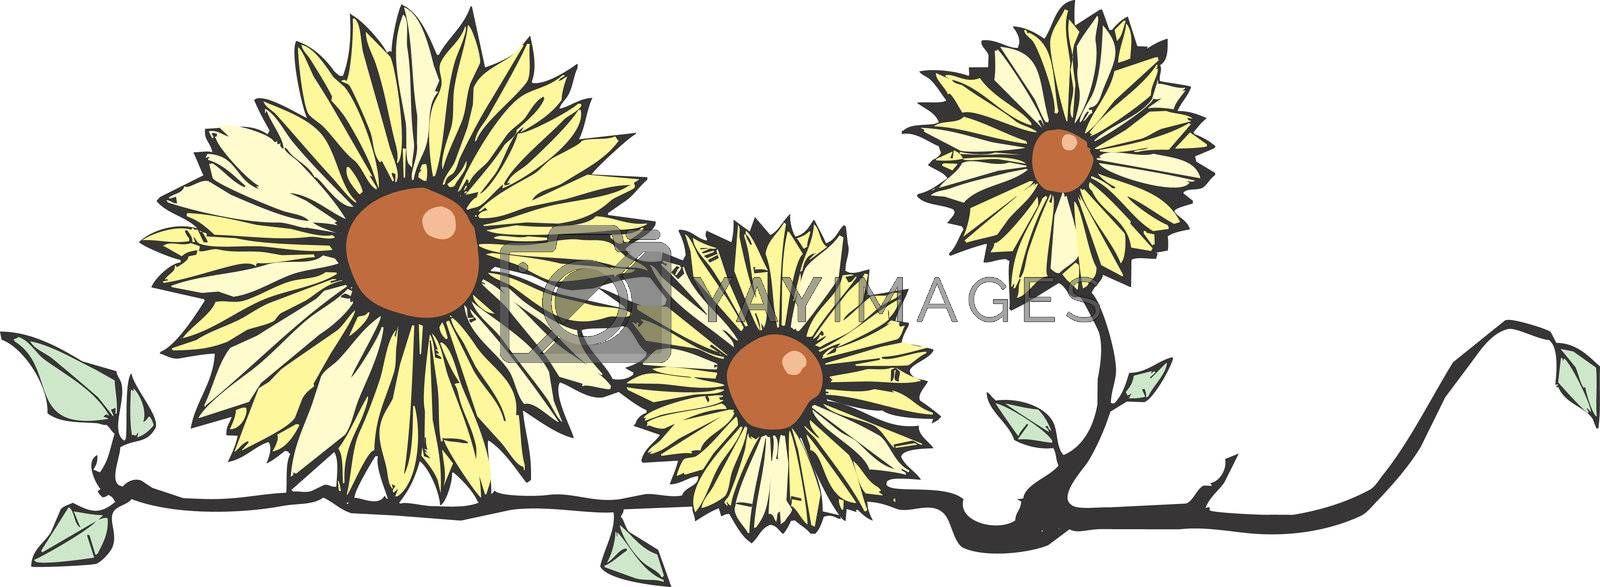 Three flowers on a stem in yellow and brown.